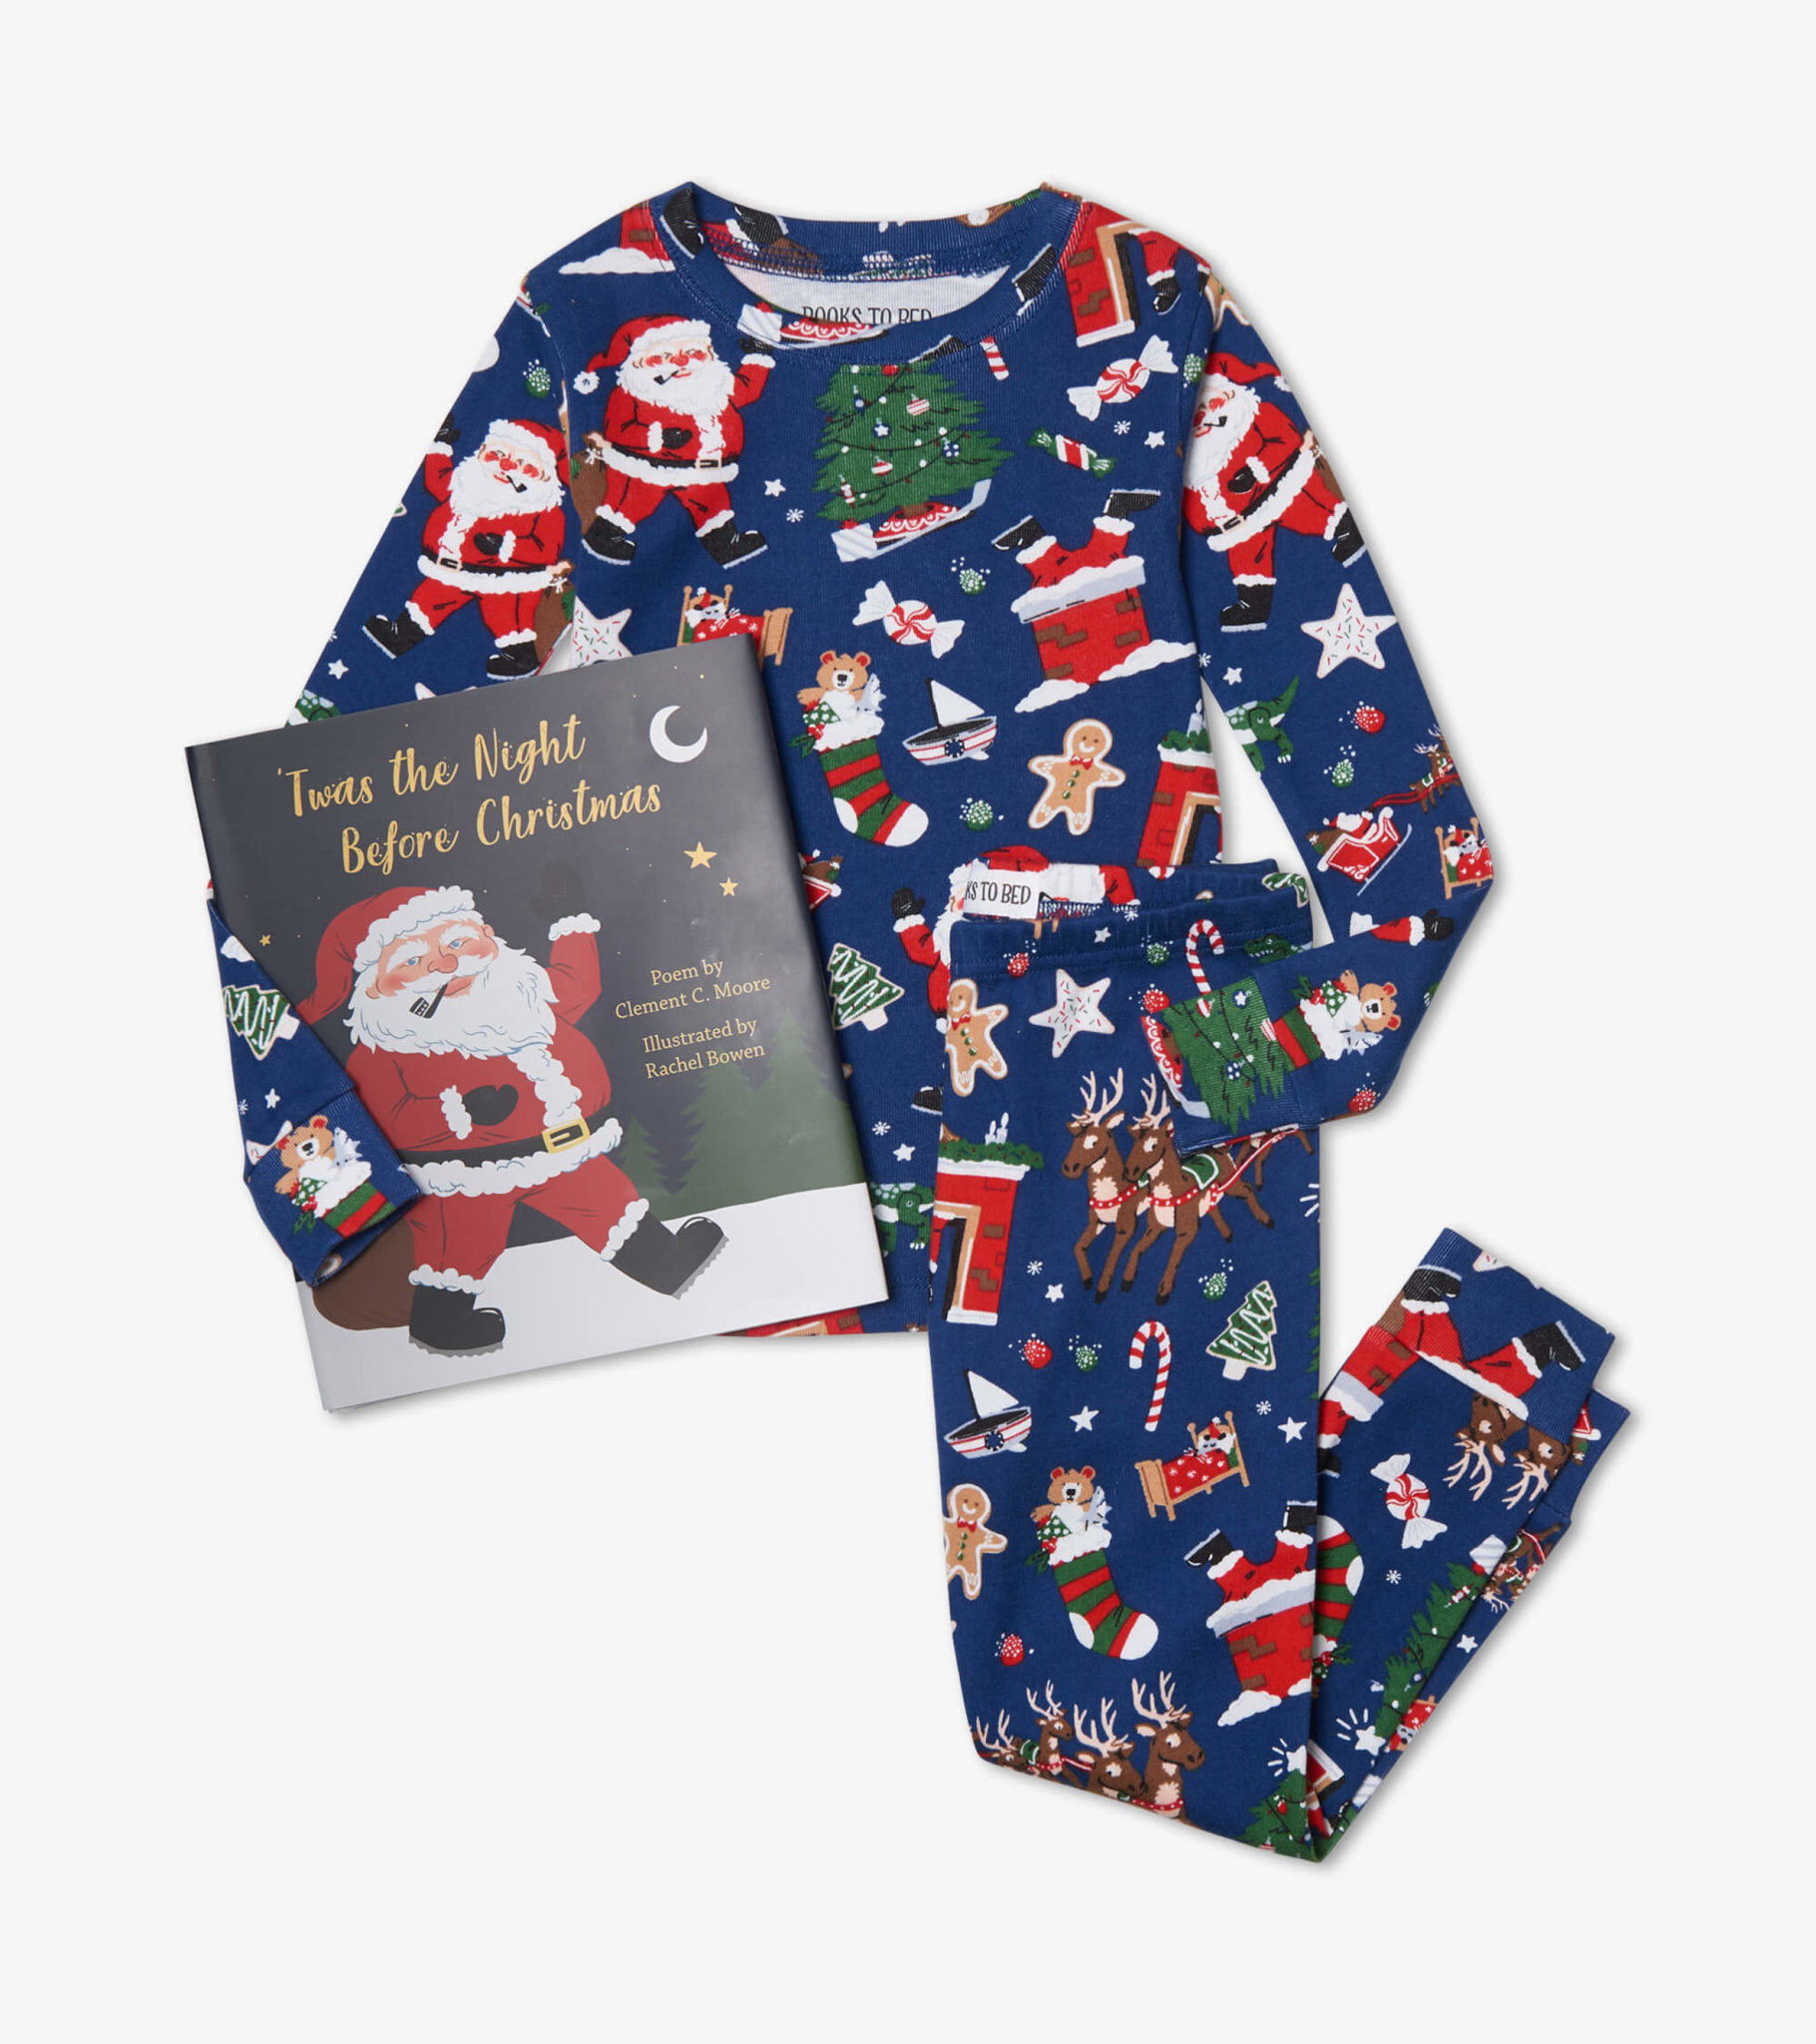 Books to Bed Blue Night Before Christmas PJs